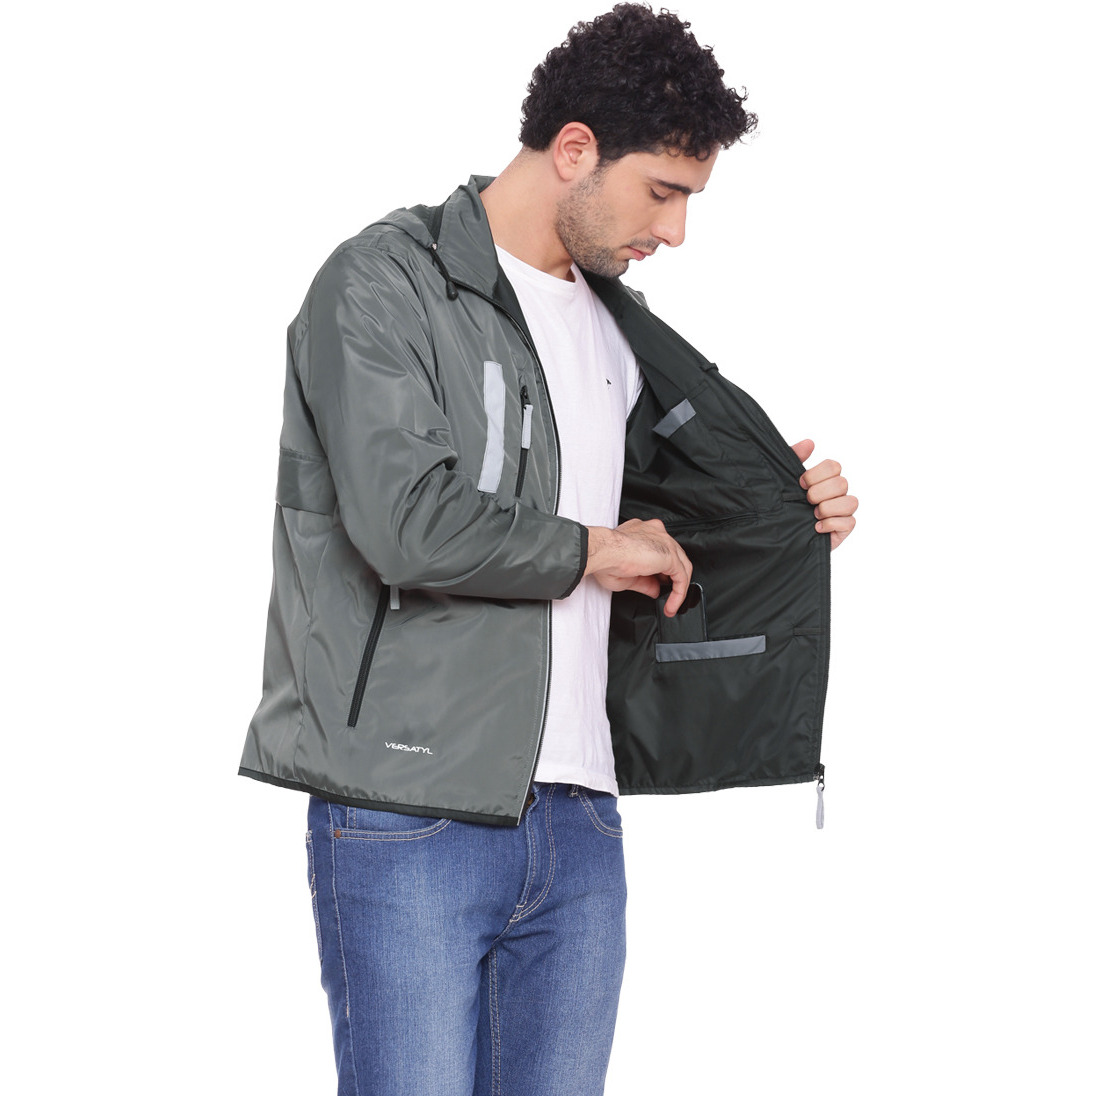 VERSATYL - World's 1st Multi-Utility Stylish Travel Jacket with 18 pockets and 29 features for Men and Women - L (Size:XXL)